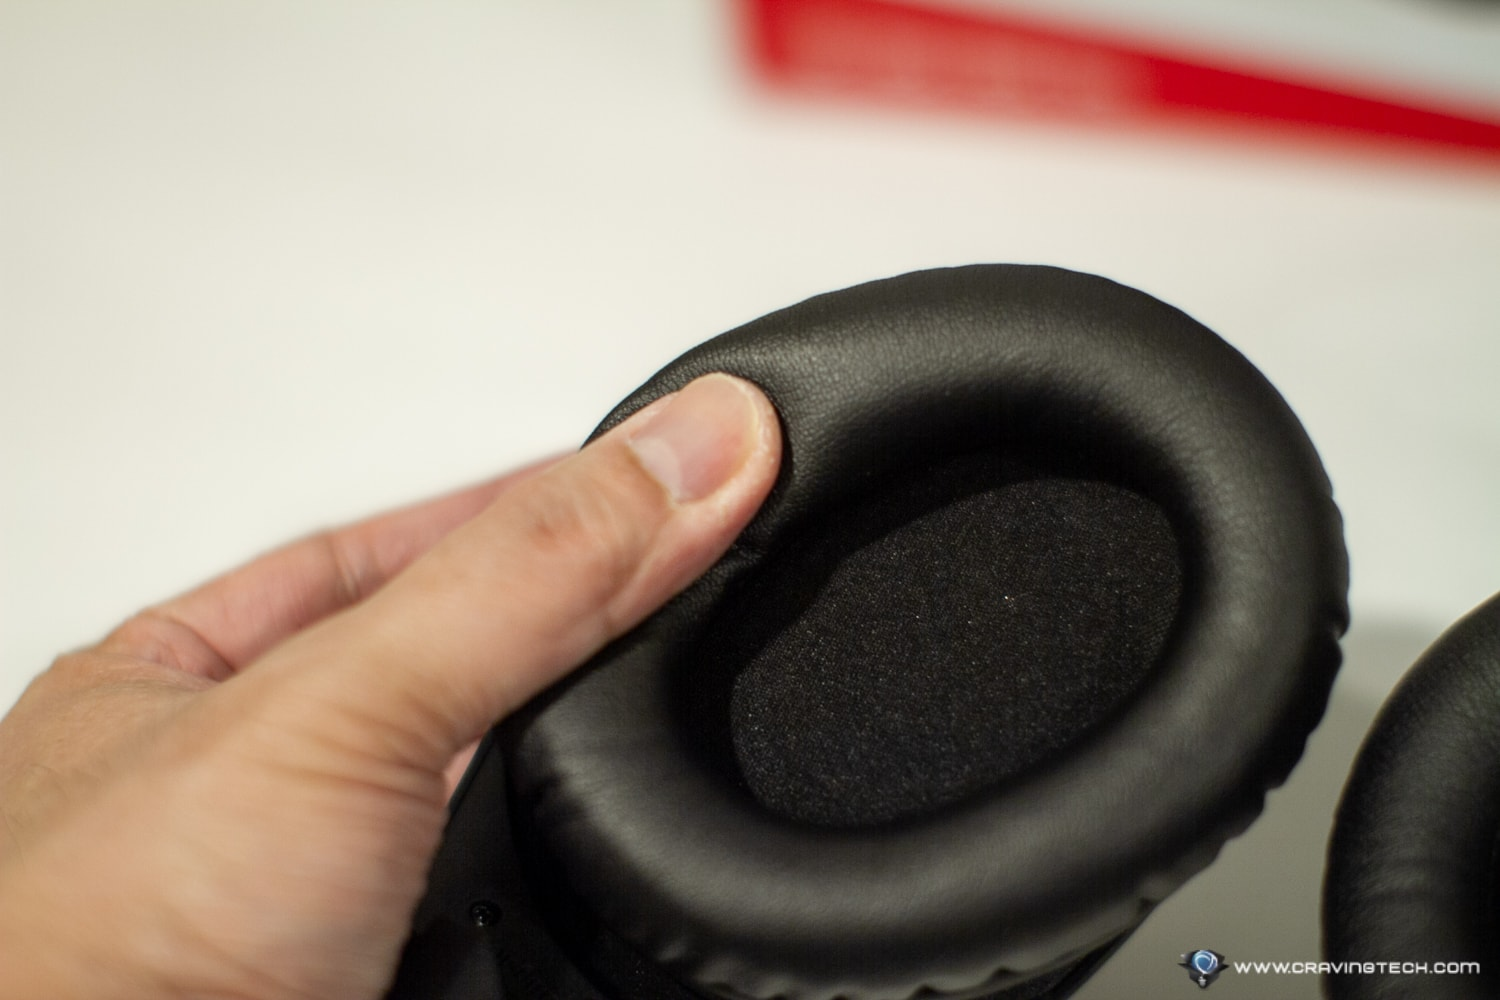 HyperX Cloud Stinger Wireless Gaming Headset Review - Comfortable